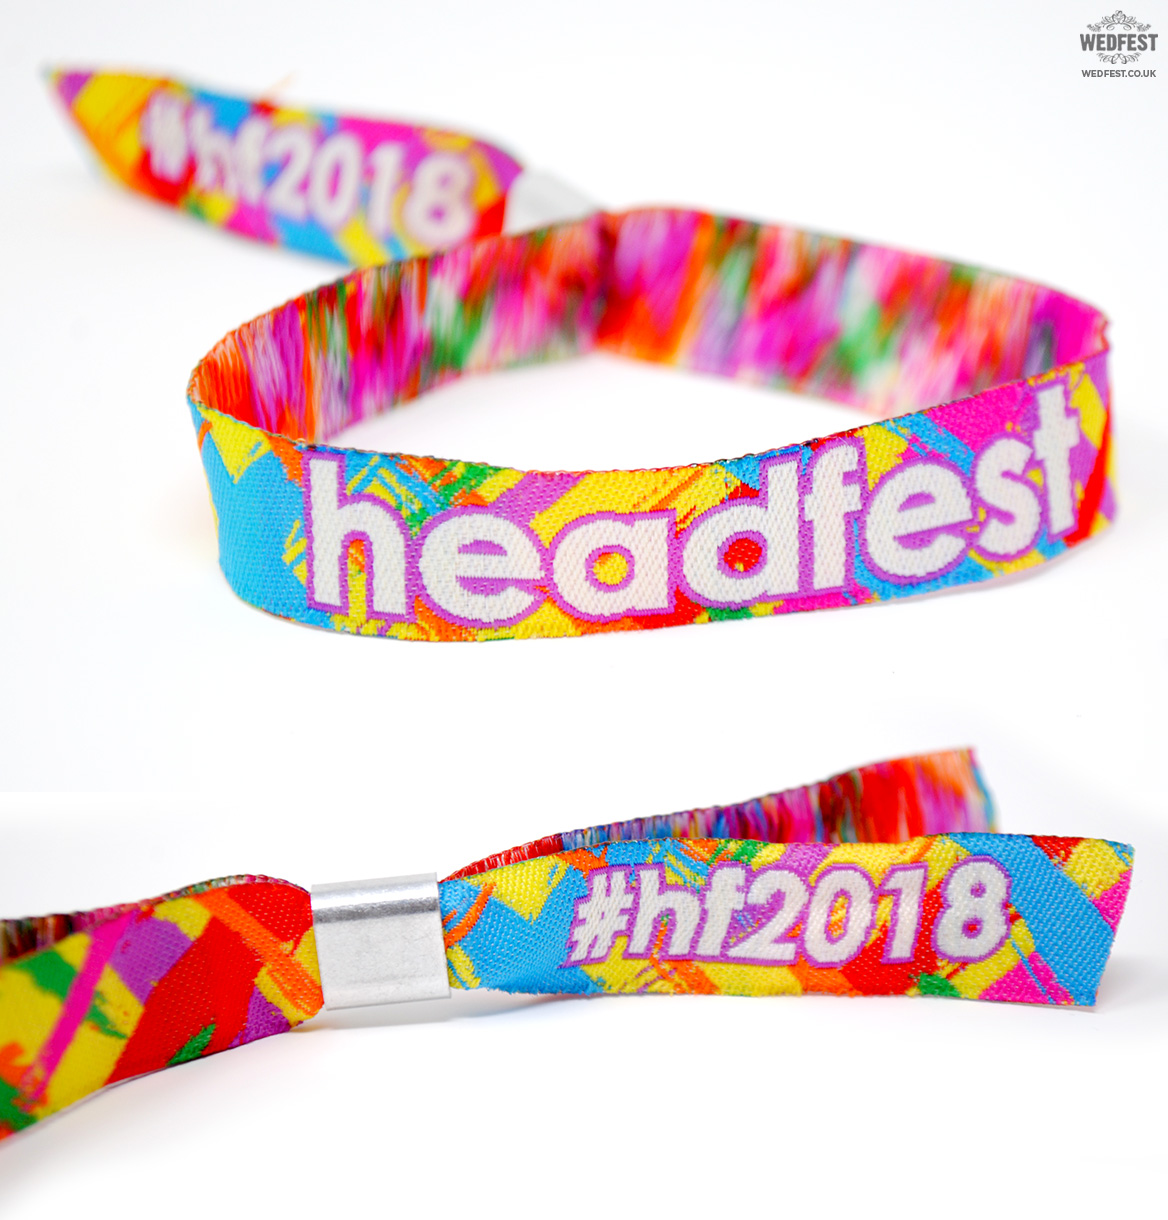 promotional wristbands uk & ireland